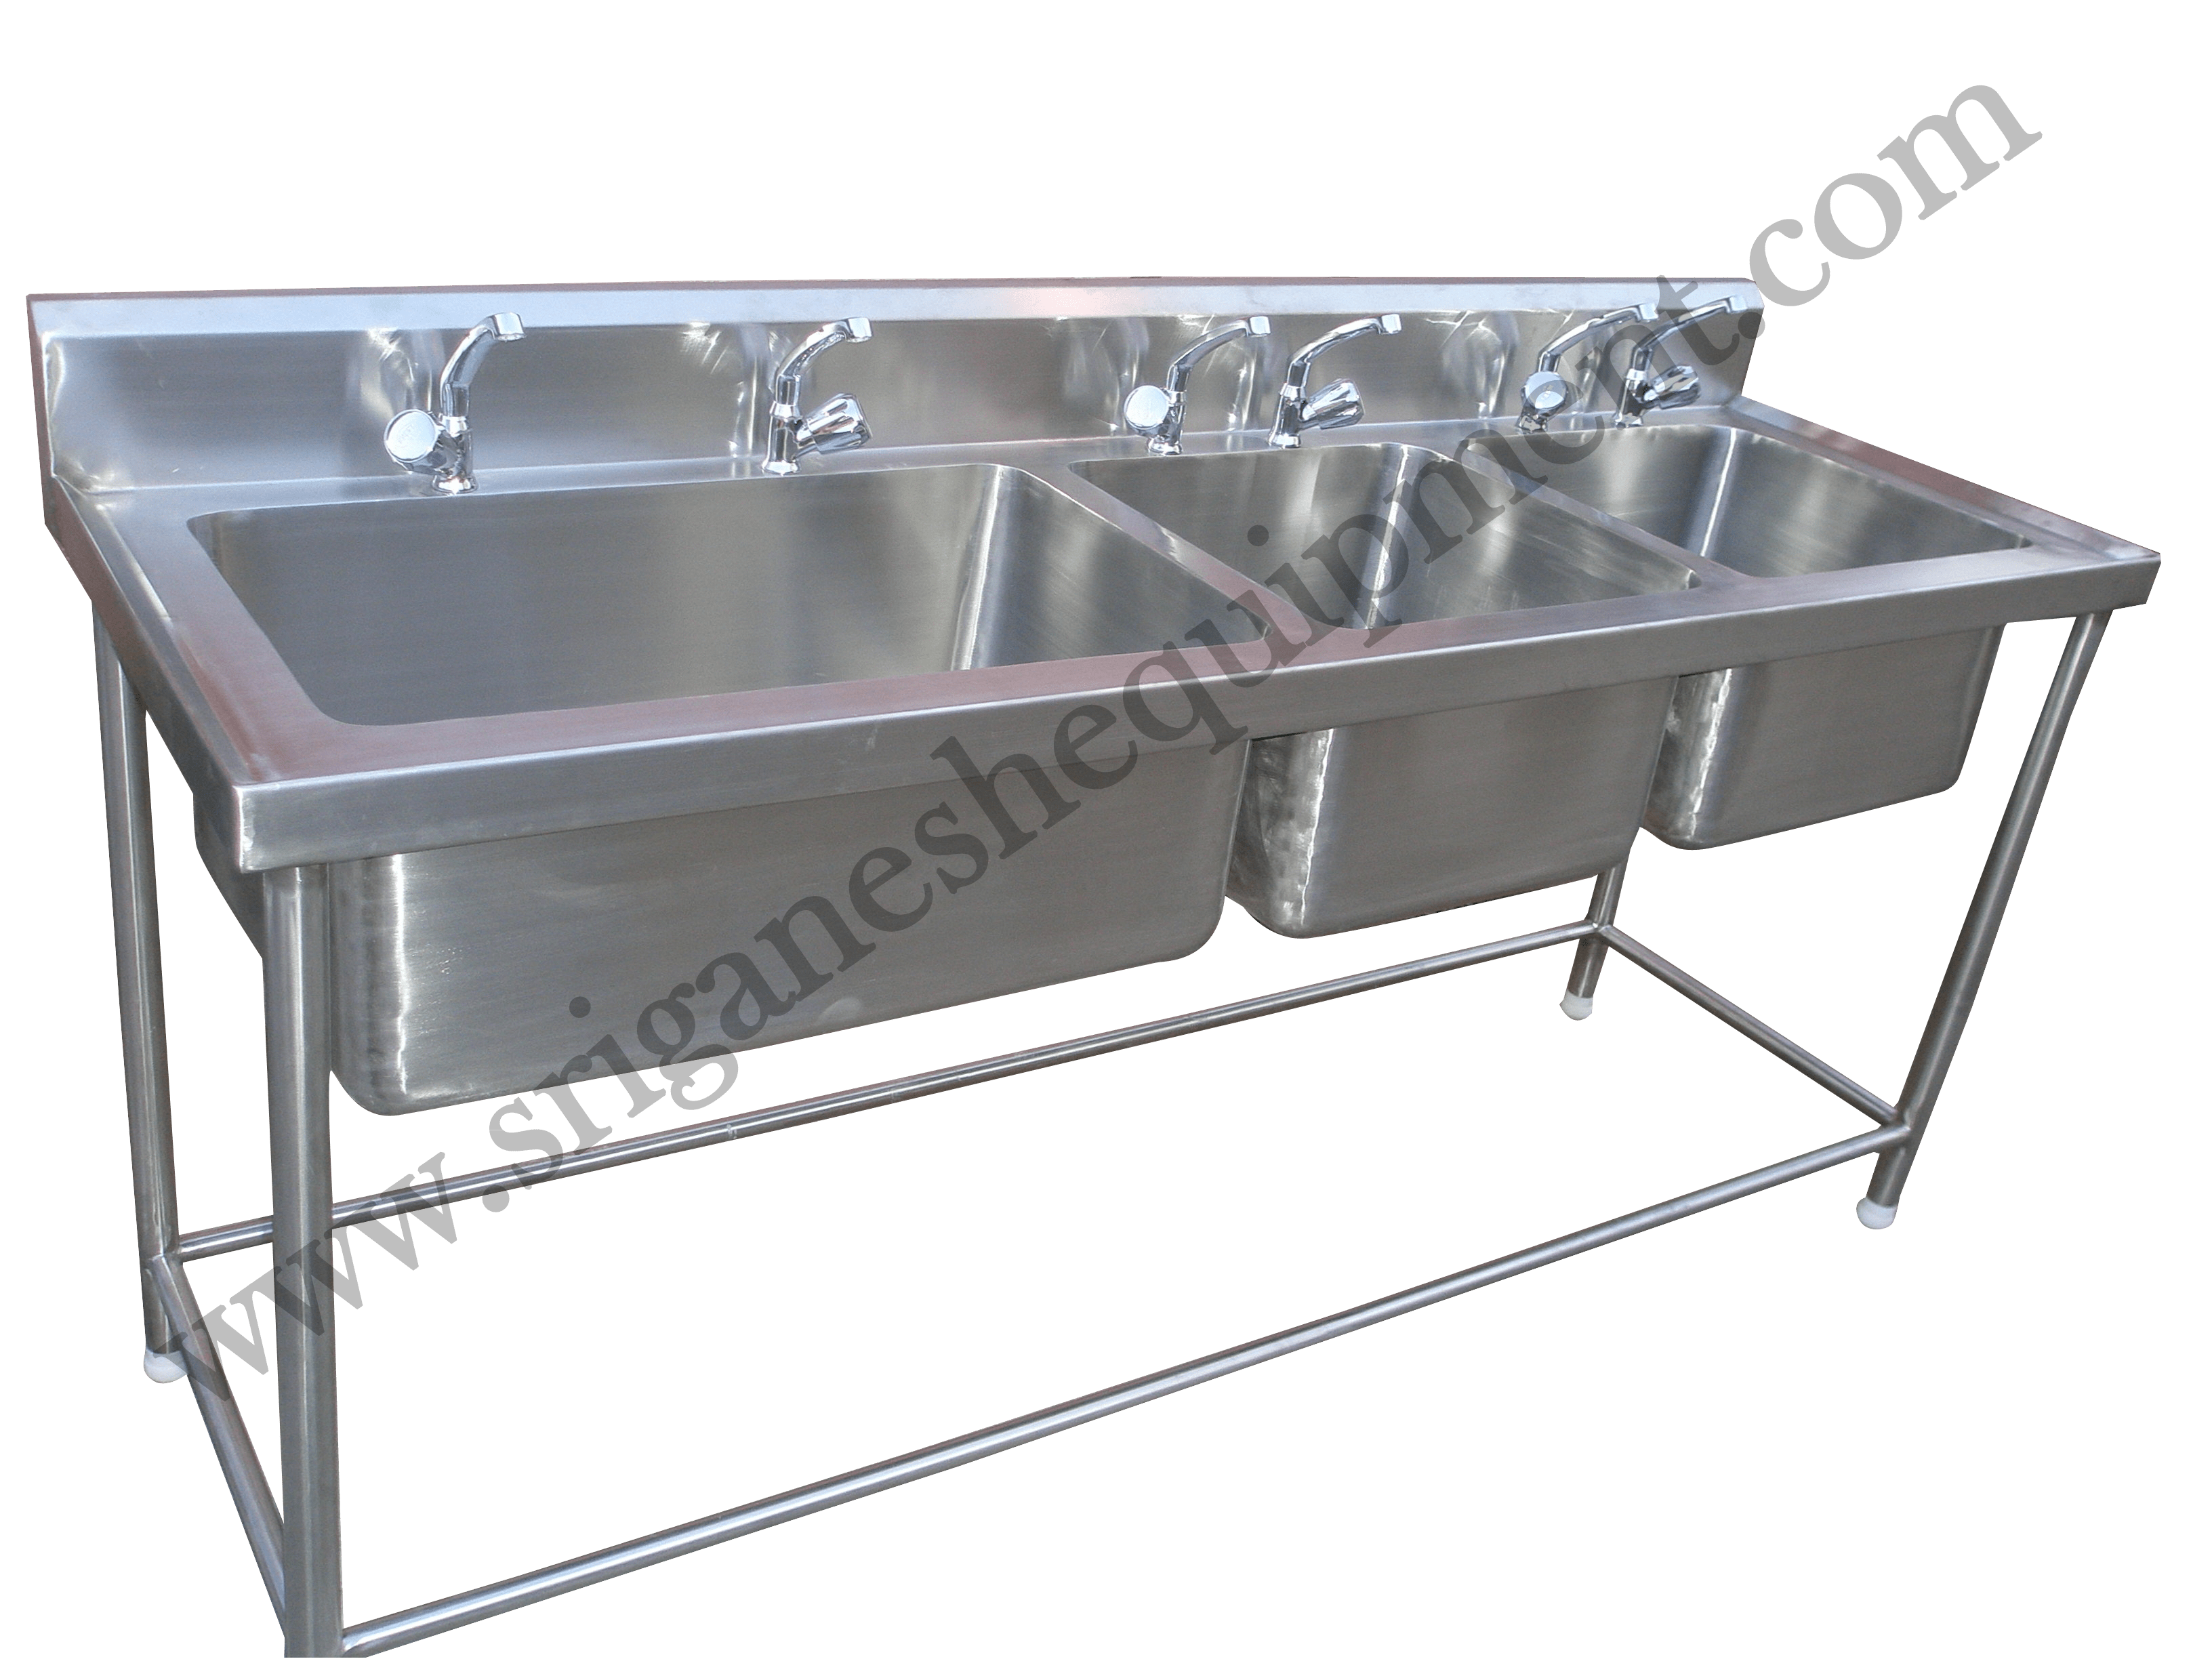 chinese kitchen range hood remodel cabinets 3 tier trolley | unit sink clean dish ...